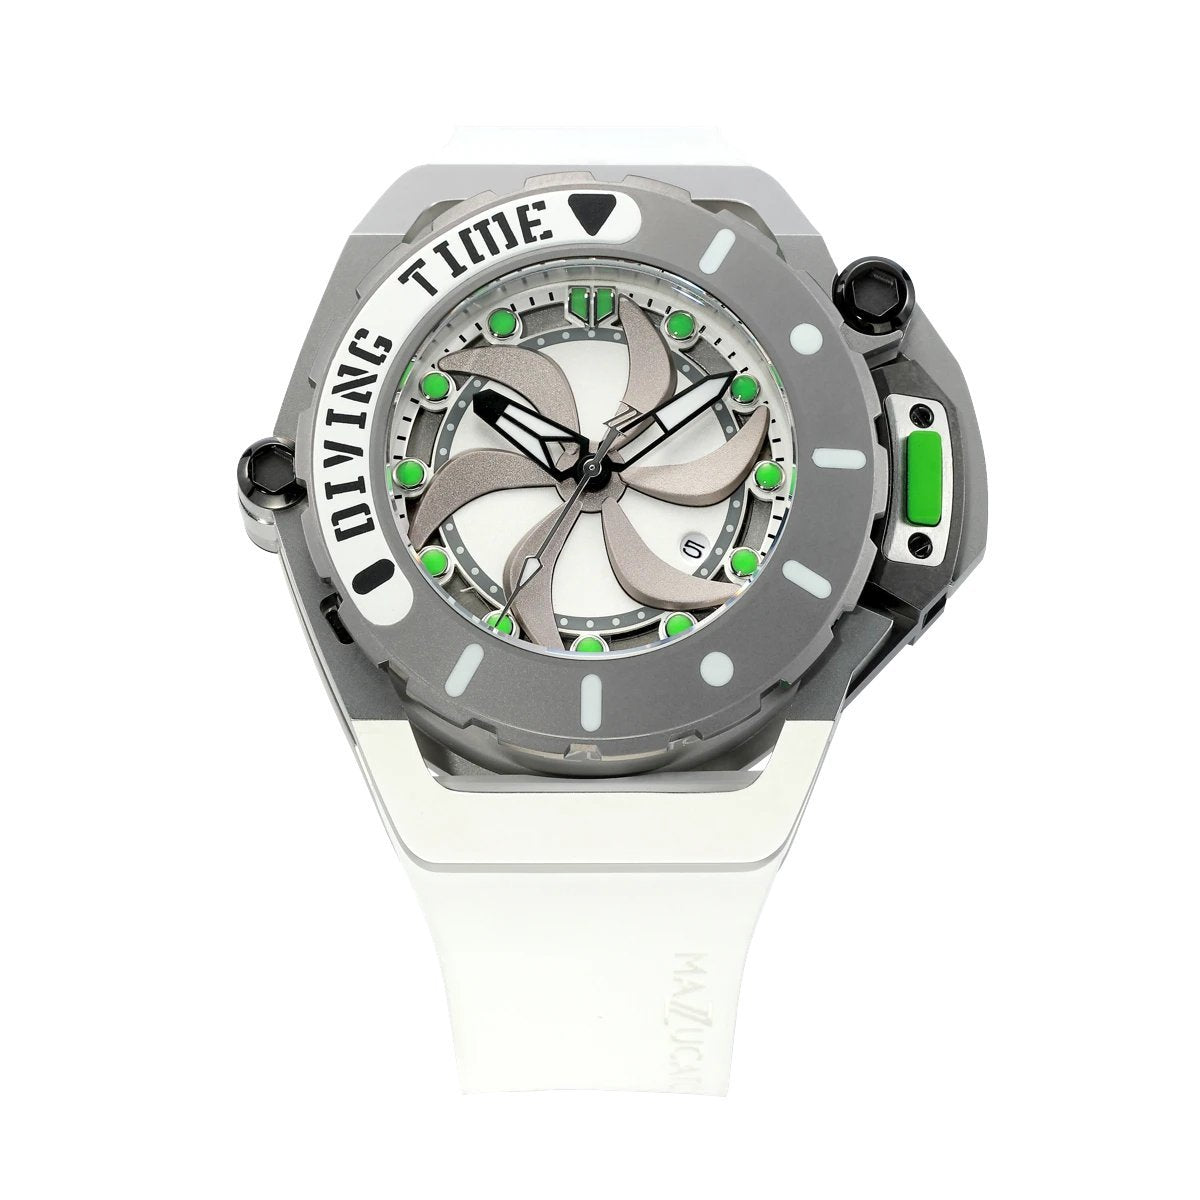 Mazzucato RIM Scuba White Green - Watches & Crystals